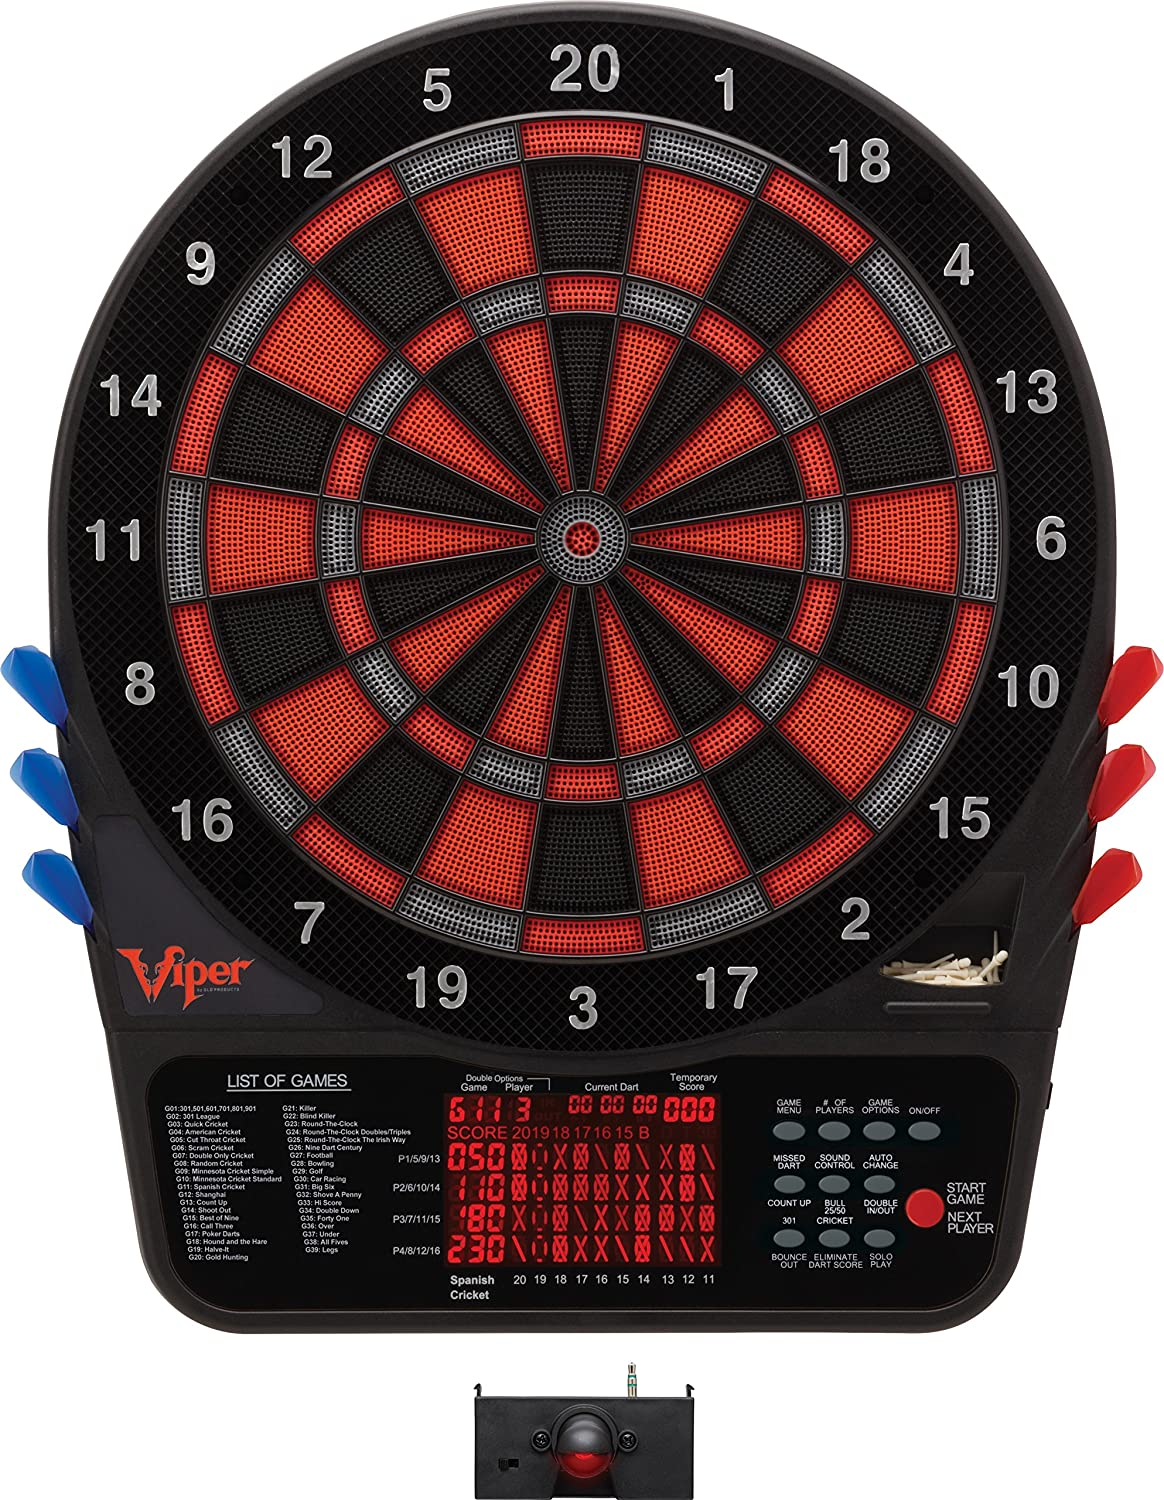 Viper 800 Dartboard and LaserLite Throw Line B01M74LYIP